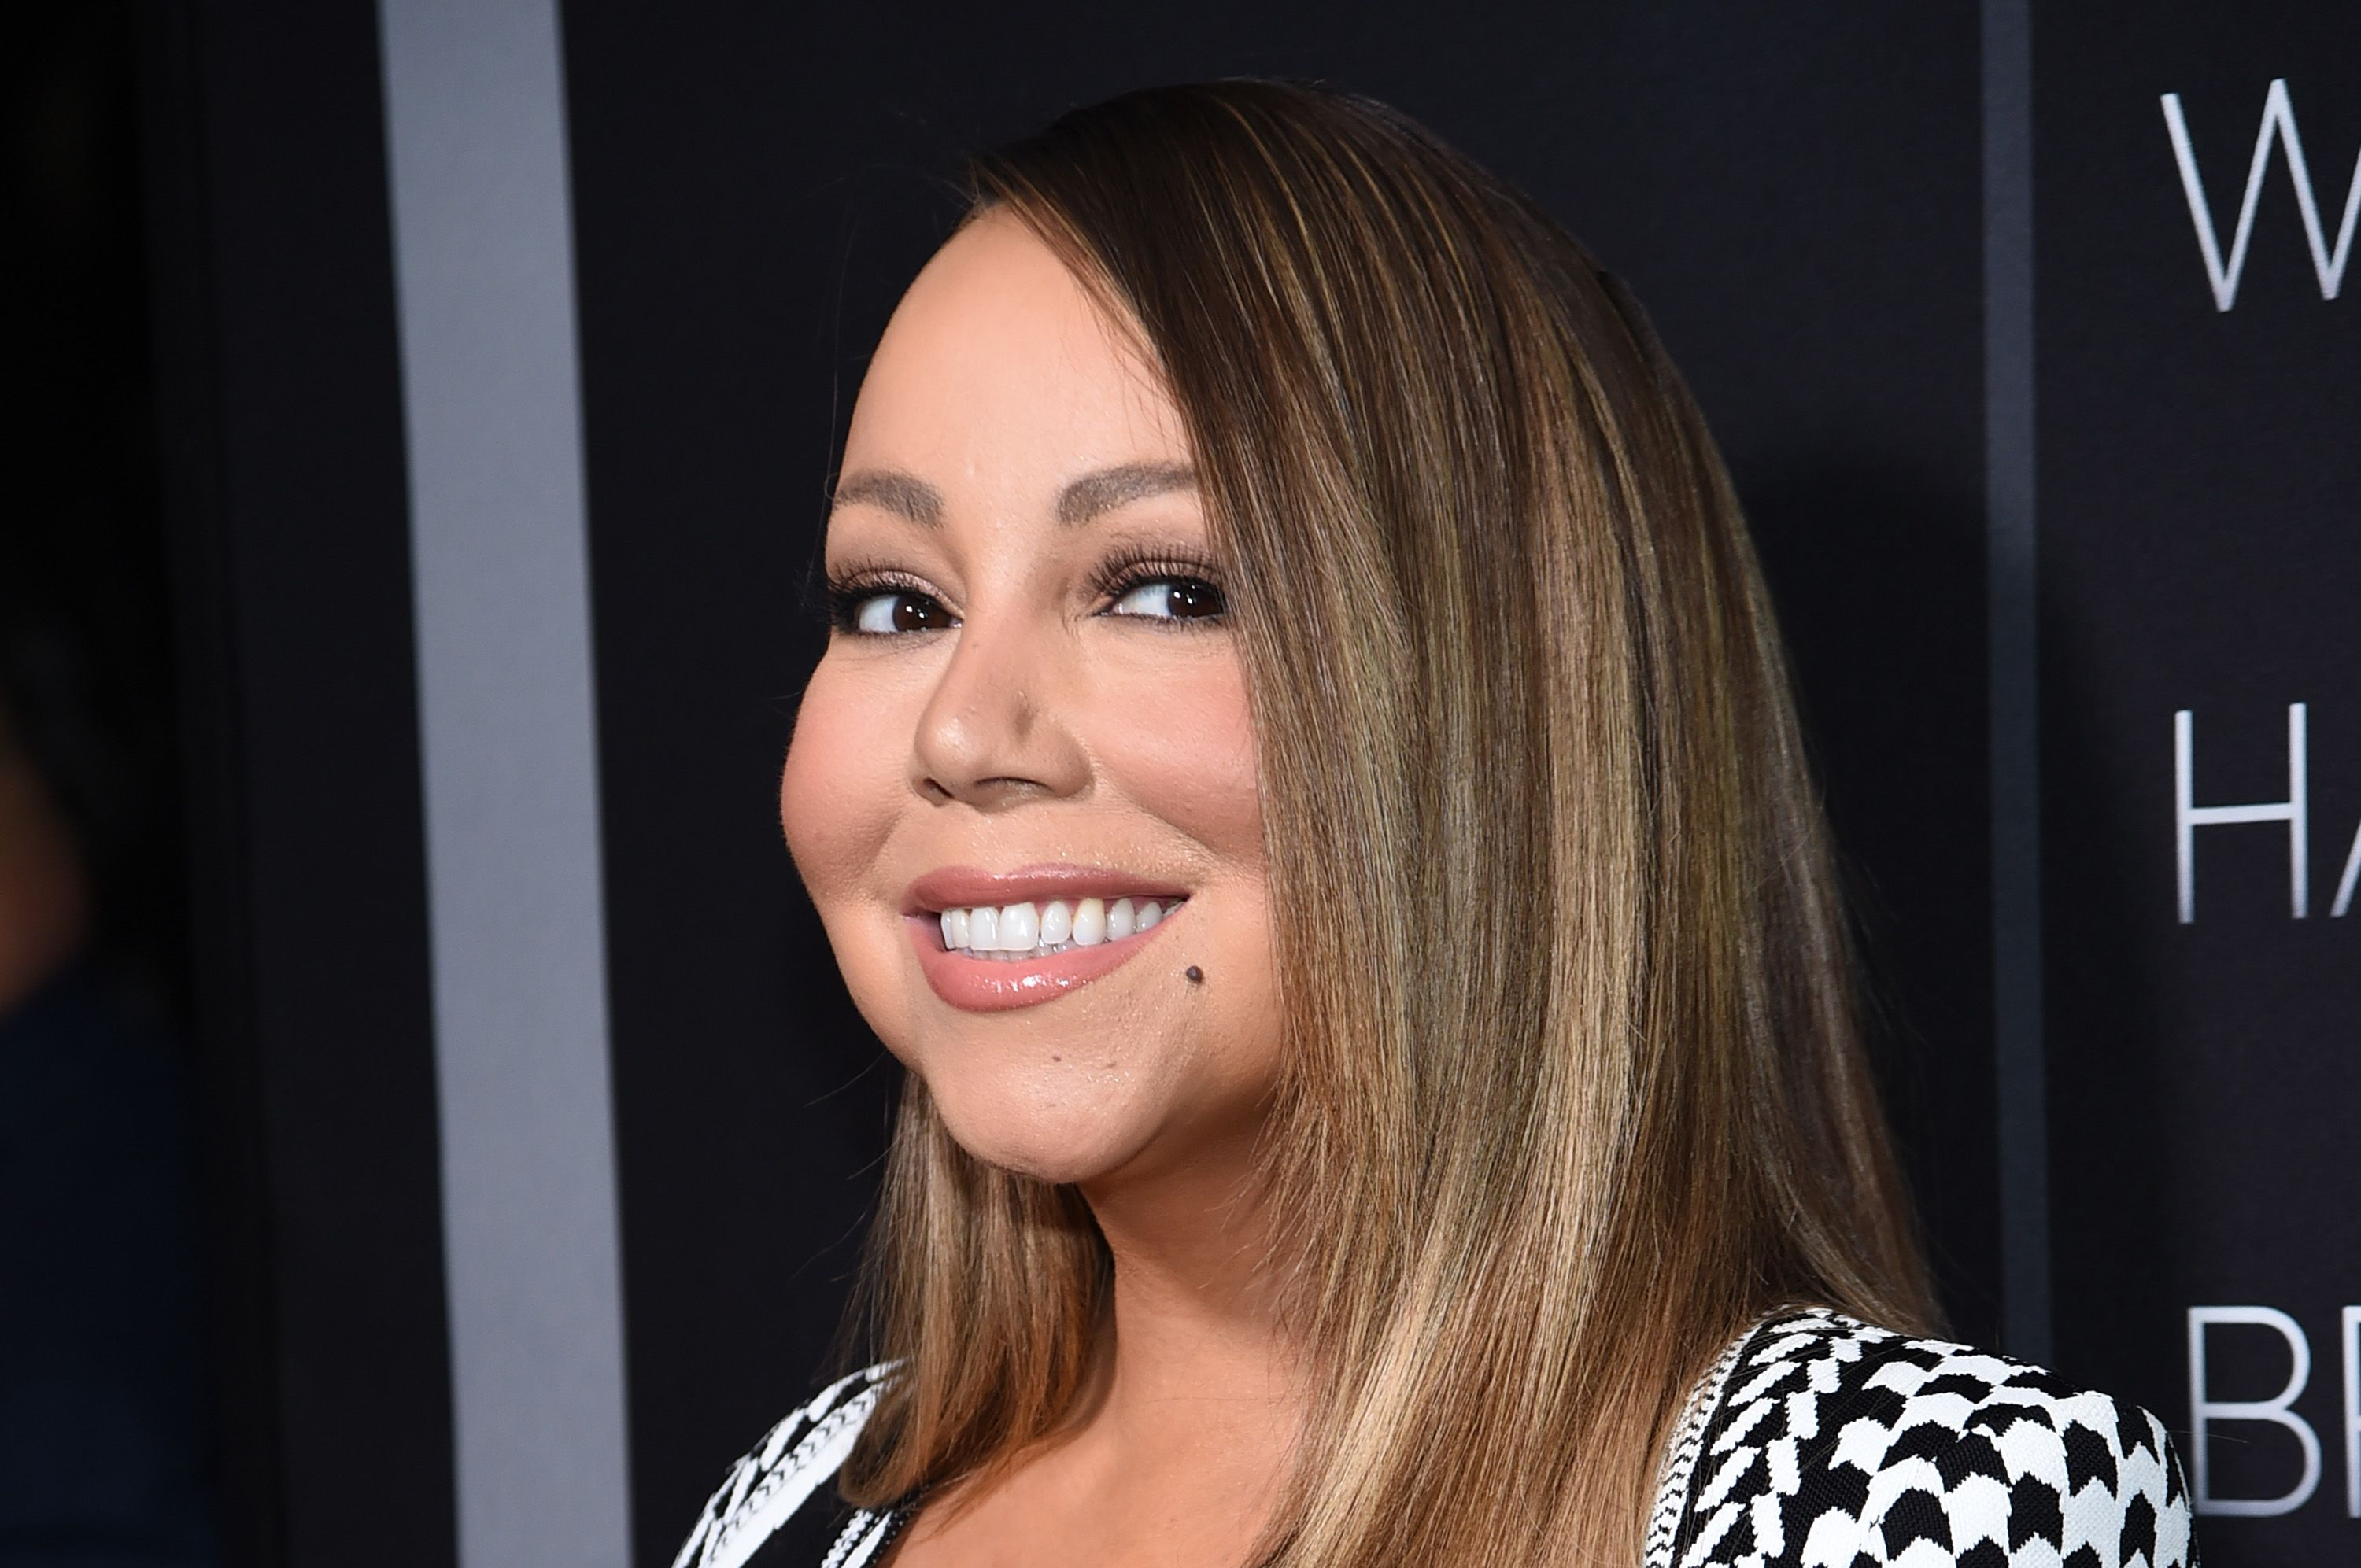 """Mariah Carey at the premiere of Tyler Perry's """"A Fall From Grace"""" at Metrograph on January 13, 2020 in New York City. 